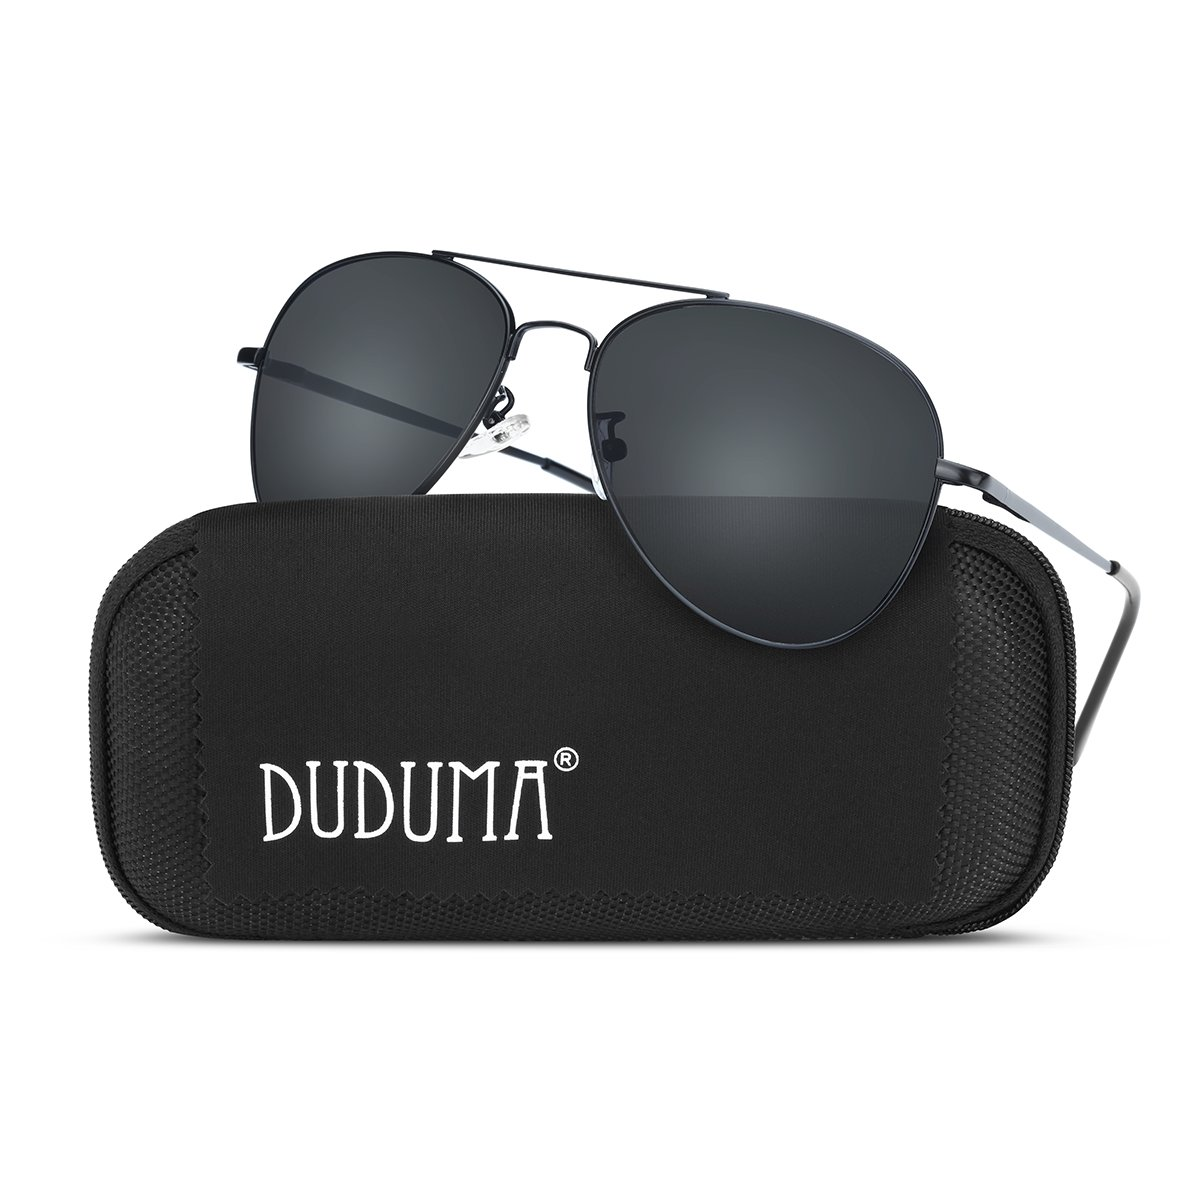 Duduma Premium Classic Aviator Sunglasses with Metal Frame Uv400 Protection(Black frame/smoke lens(not mirrored lens)) by Duduma